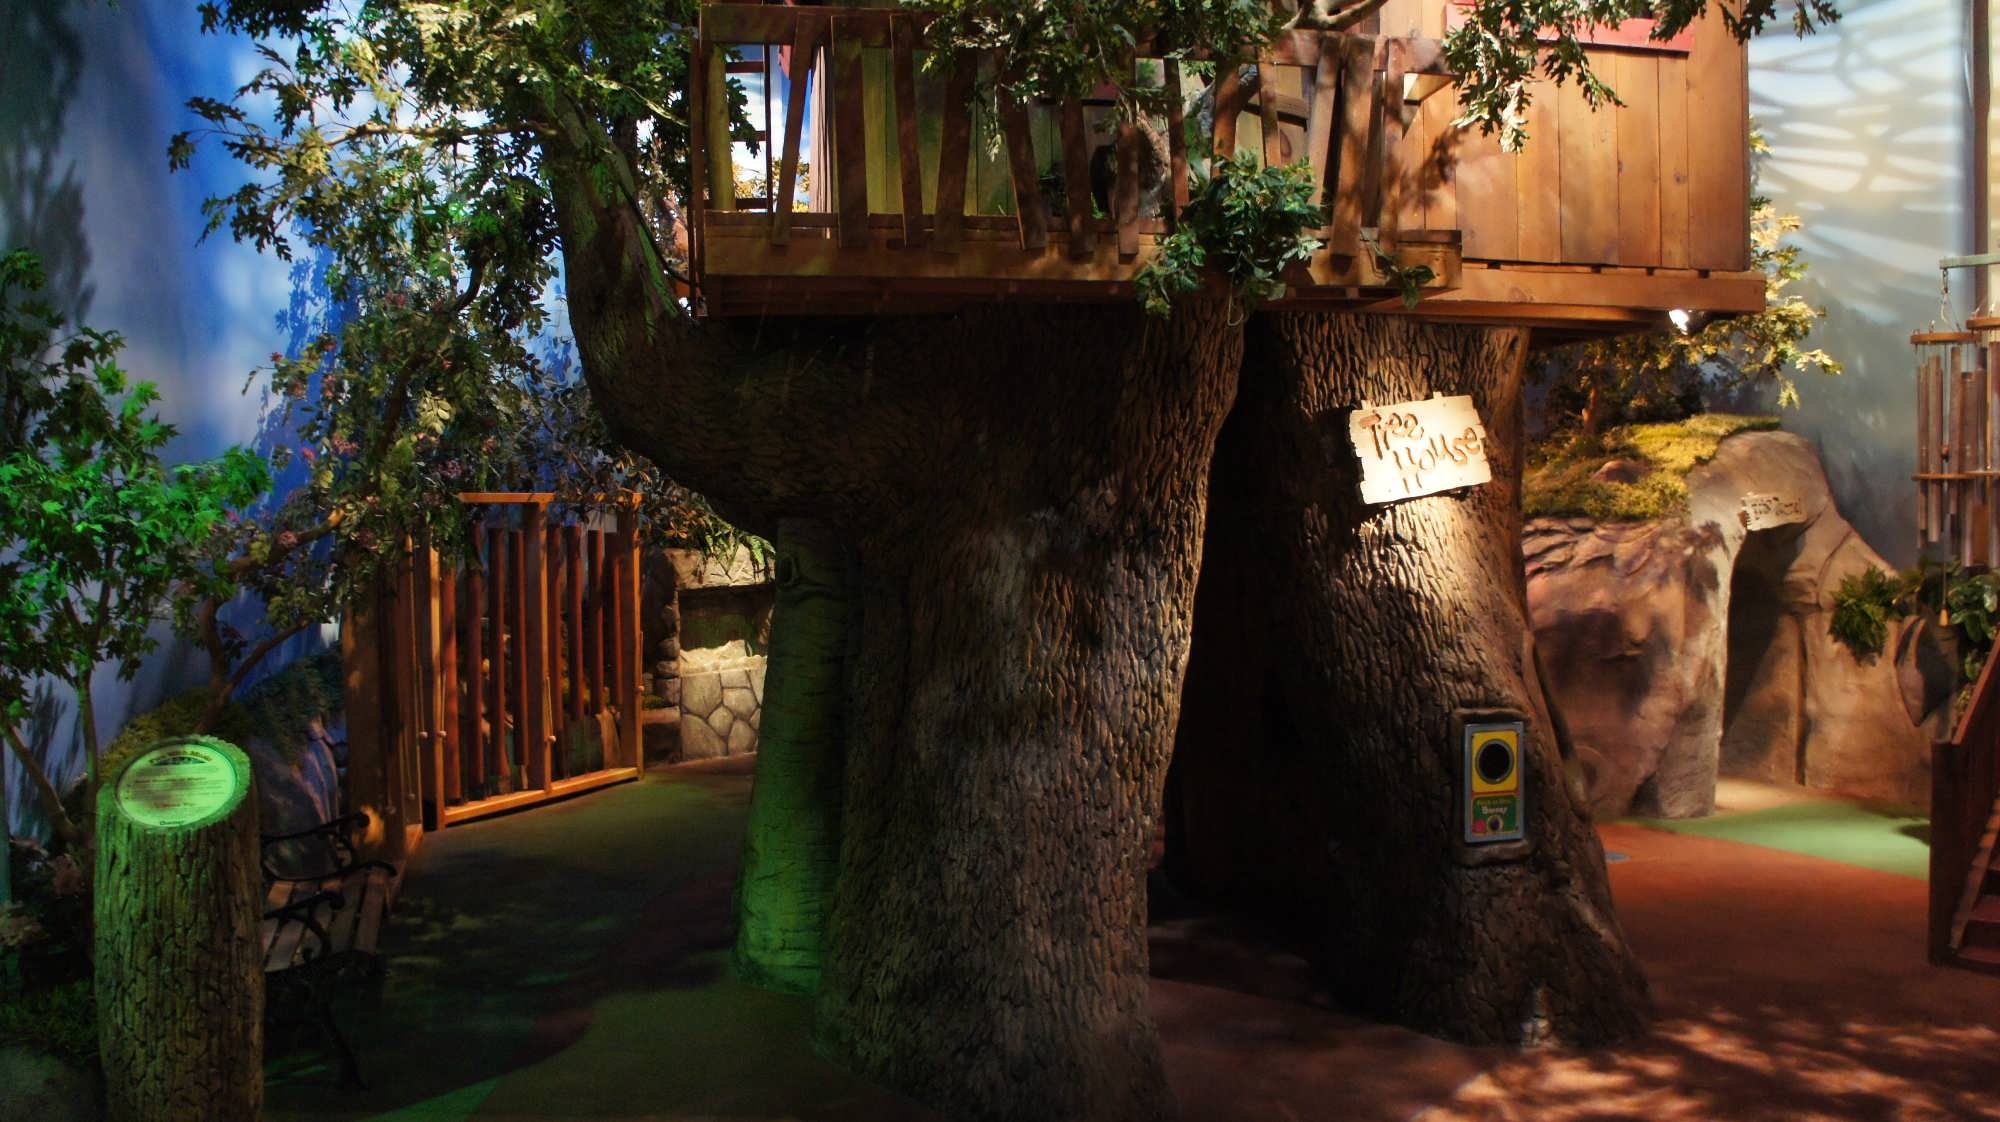 Barney's Backyard indoor playground features this tree house and much more!